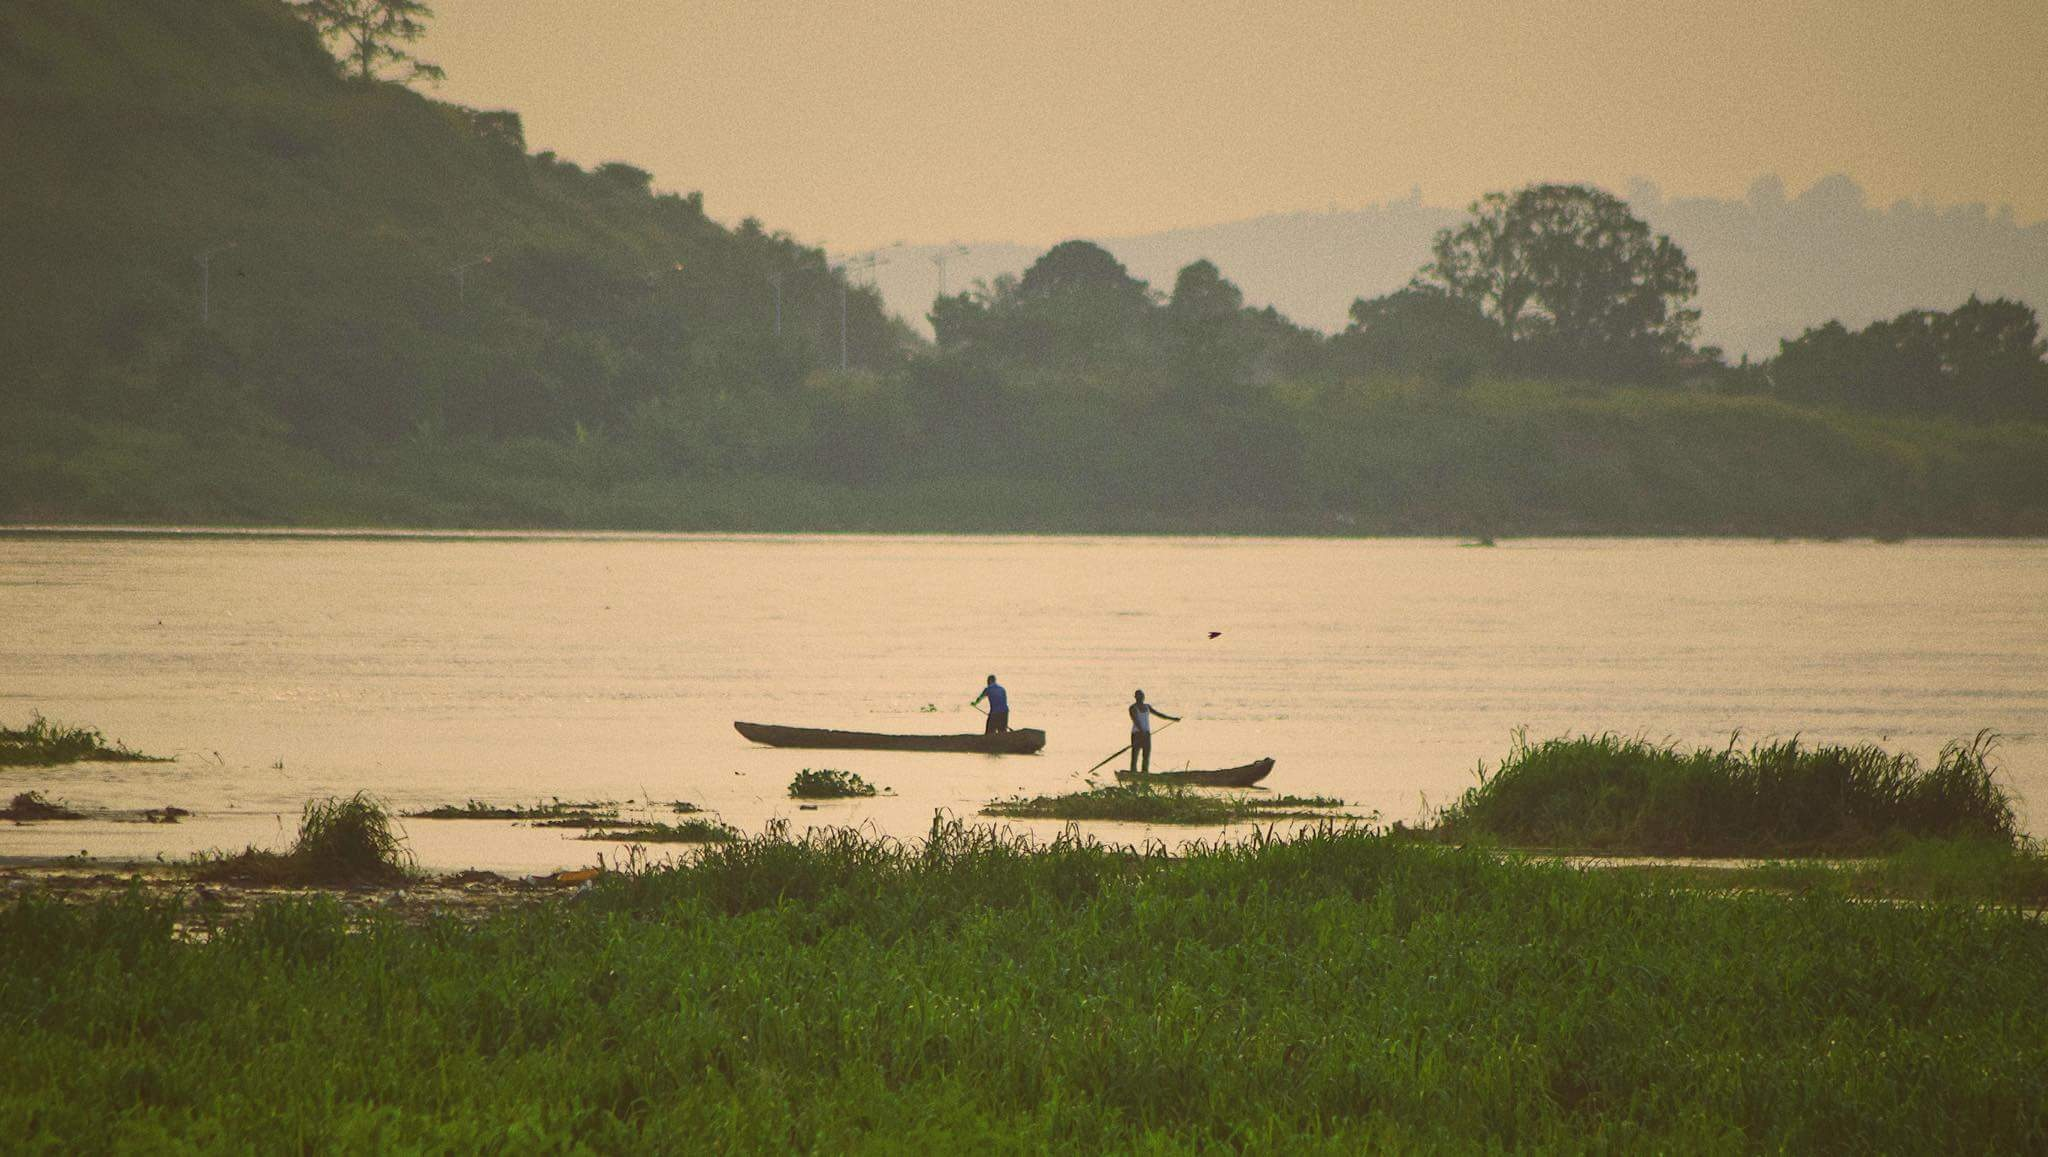 golden hour on the congo river by Badr Bensaid